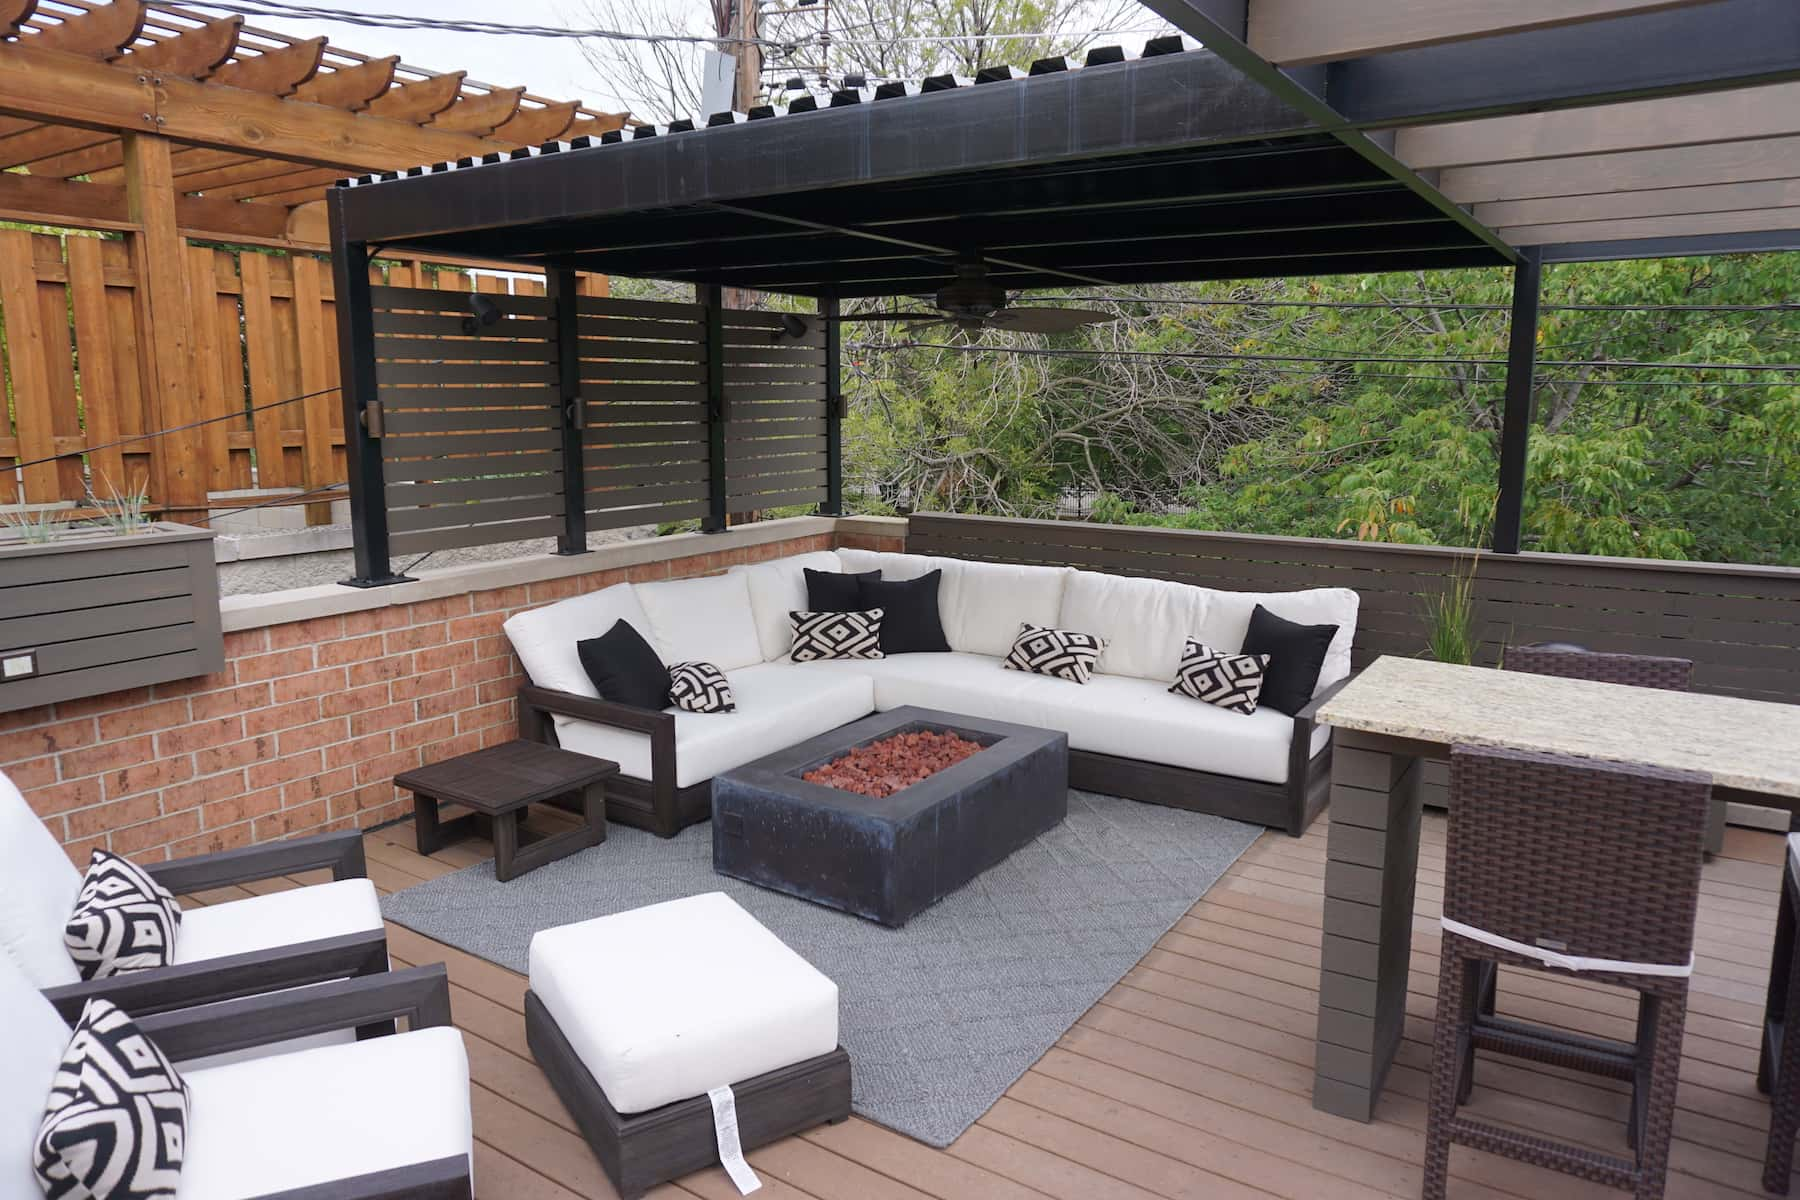 Outdoor furniture and fire pit